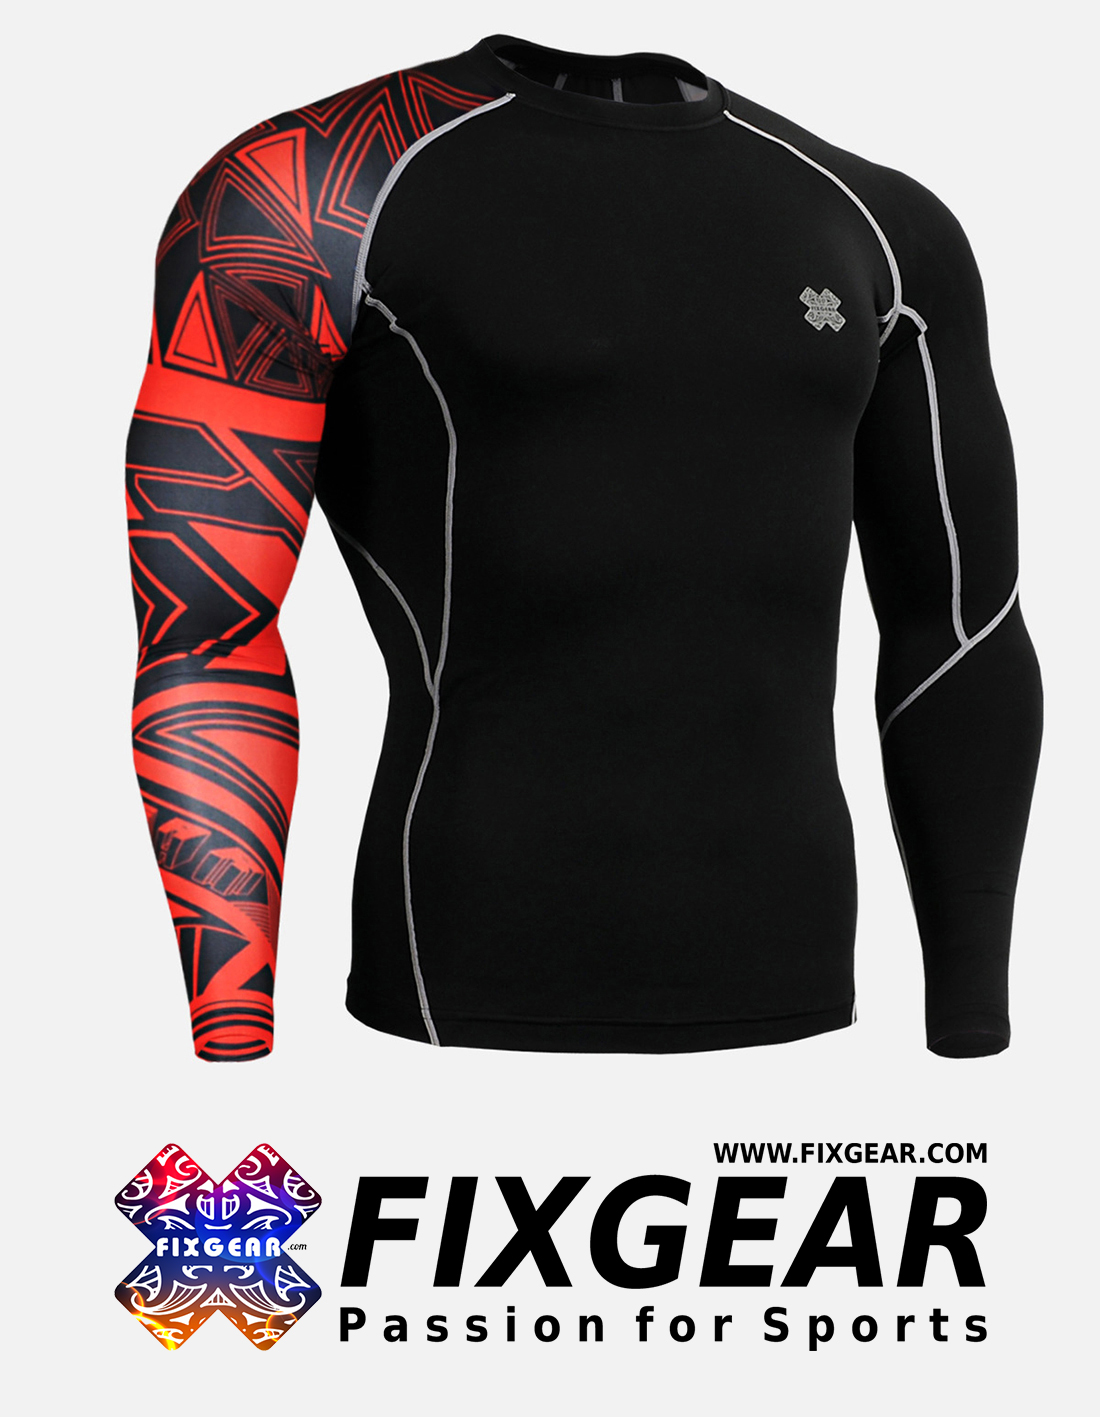 FIXGEAR CP-B2 Compression Base Layer Shirt